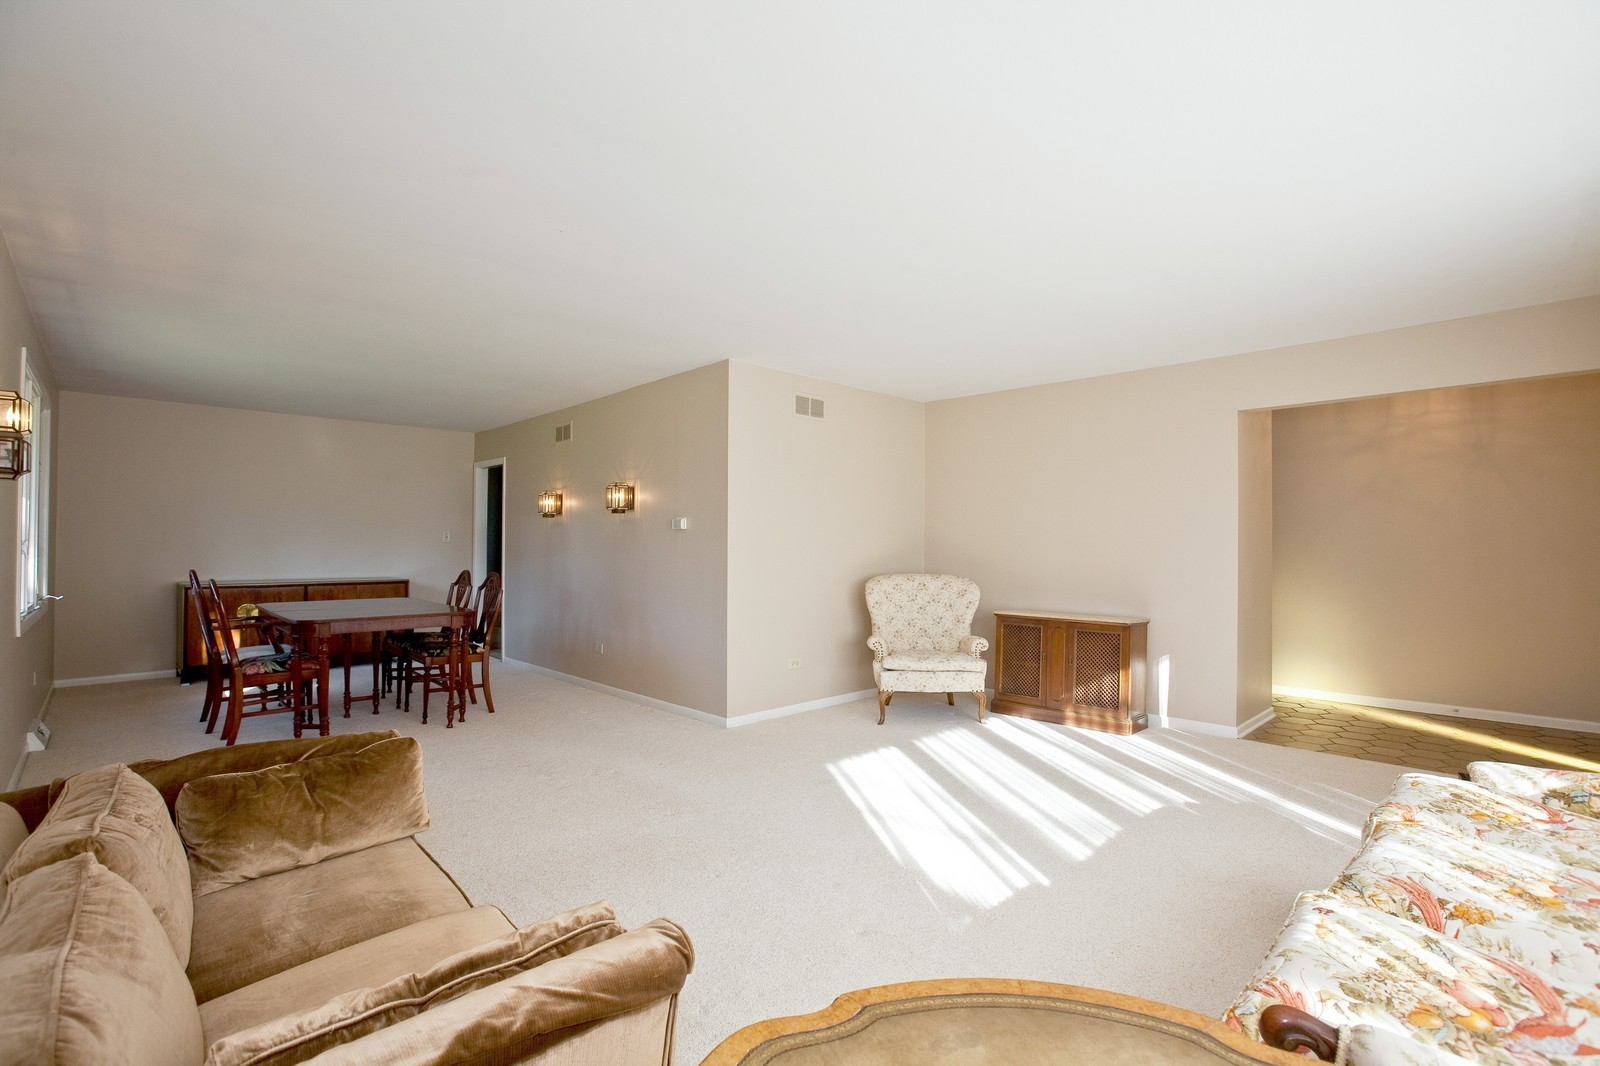 Real Estate Photography - 1330 68th Place, Downers Grove, IL, 60516 - Living Room / Dining Room